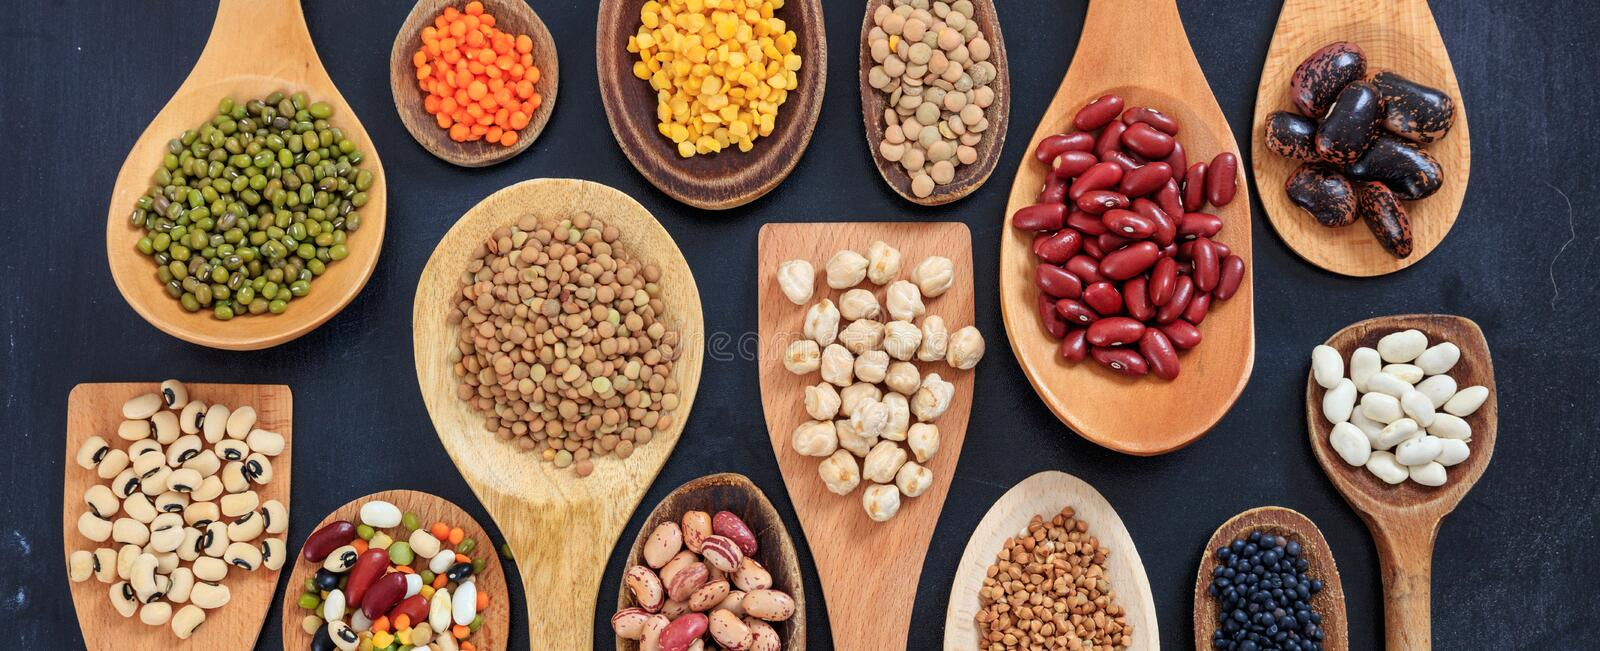 Variety of dry uncooked legumes on wooden spoons, banner royalty free stock photo